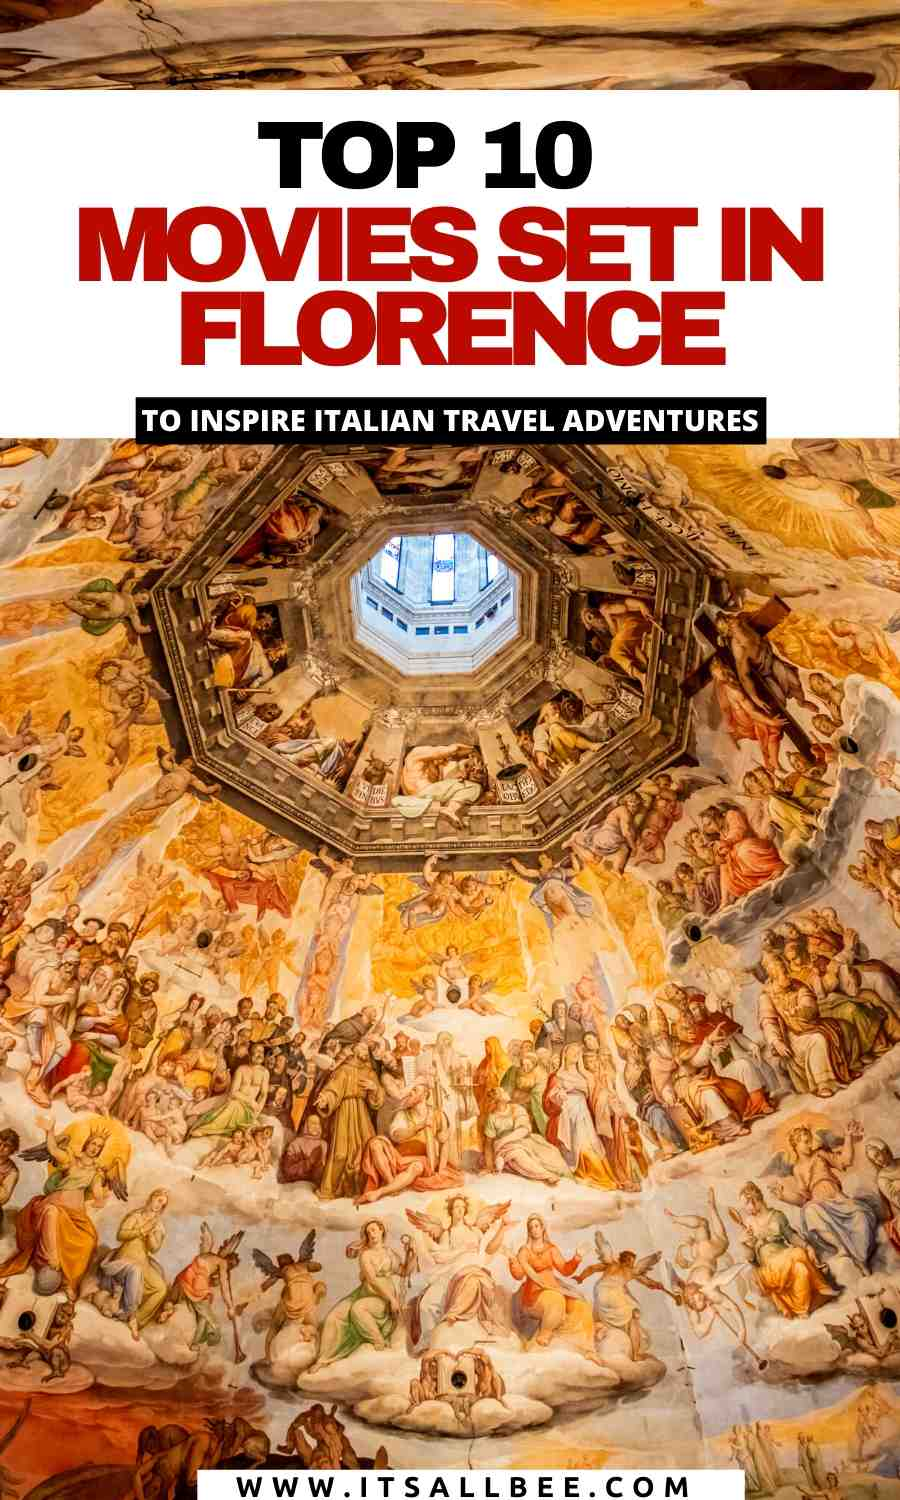 Movies about Florence